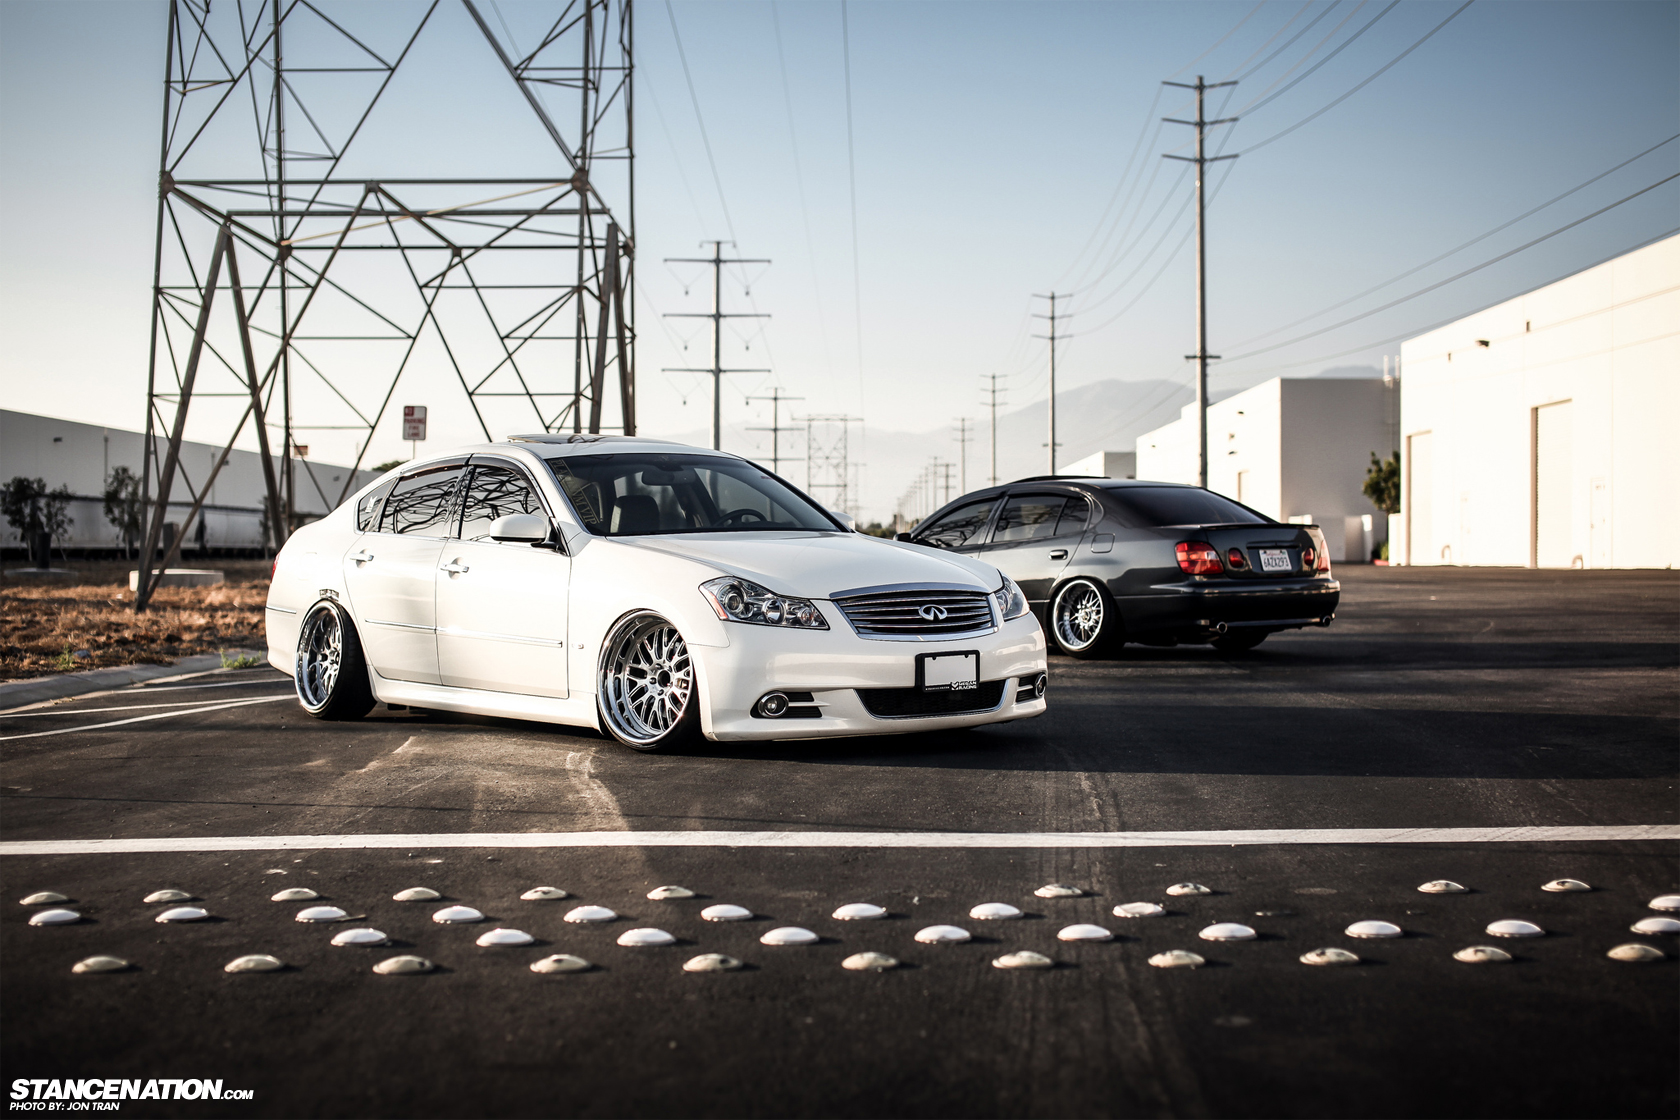 Garage Auto Nation Phantom Garage Usa Inifniti M35 And Lexus Gs300